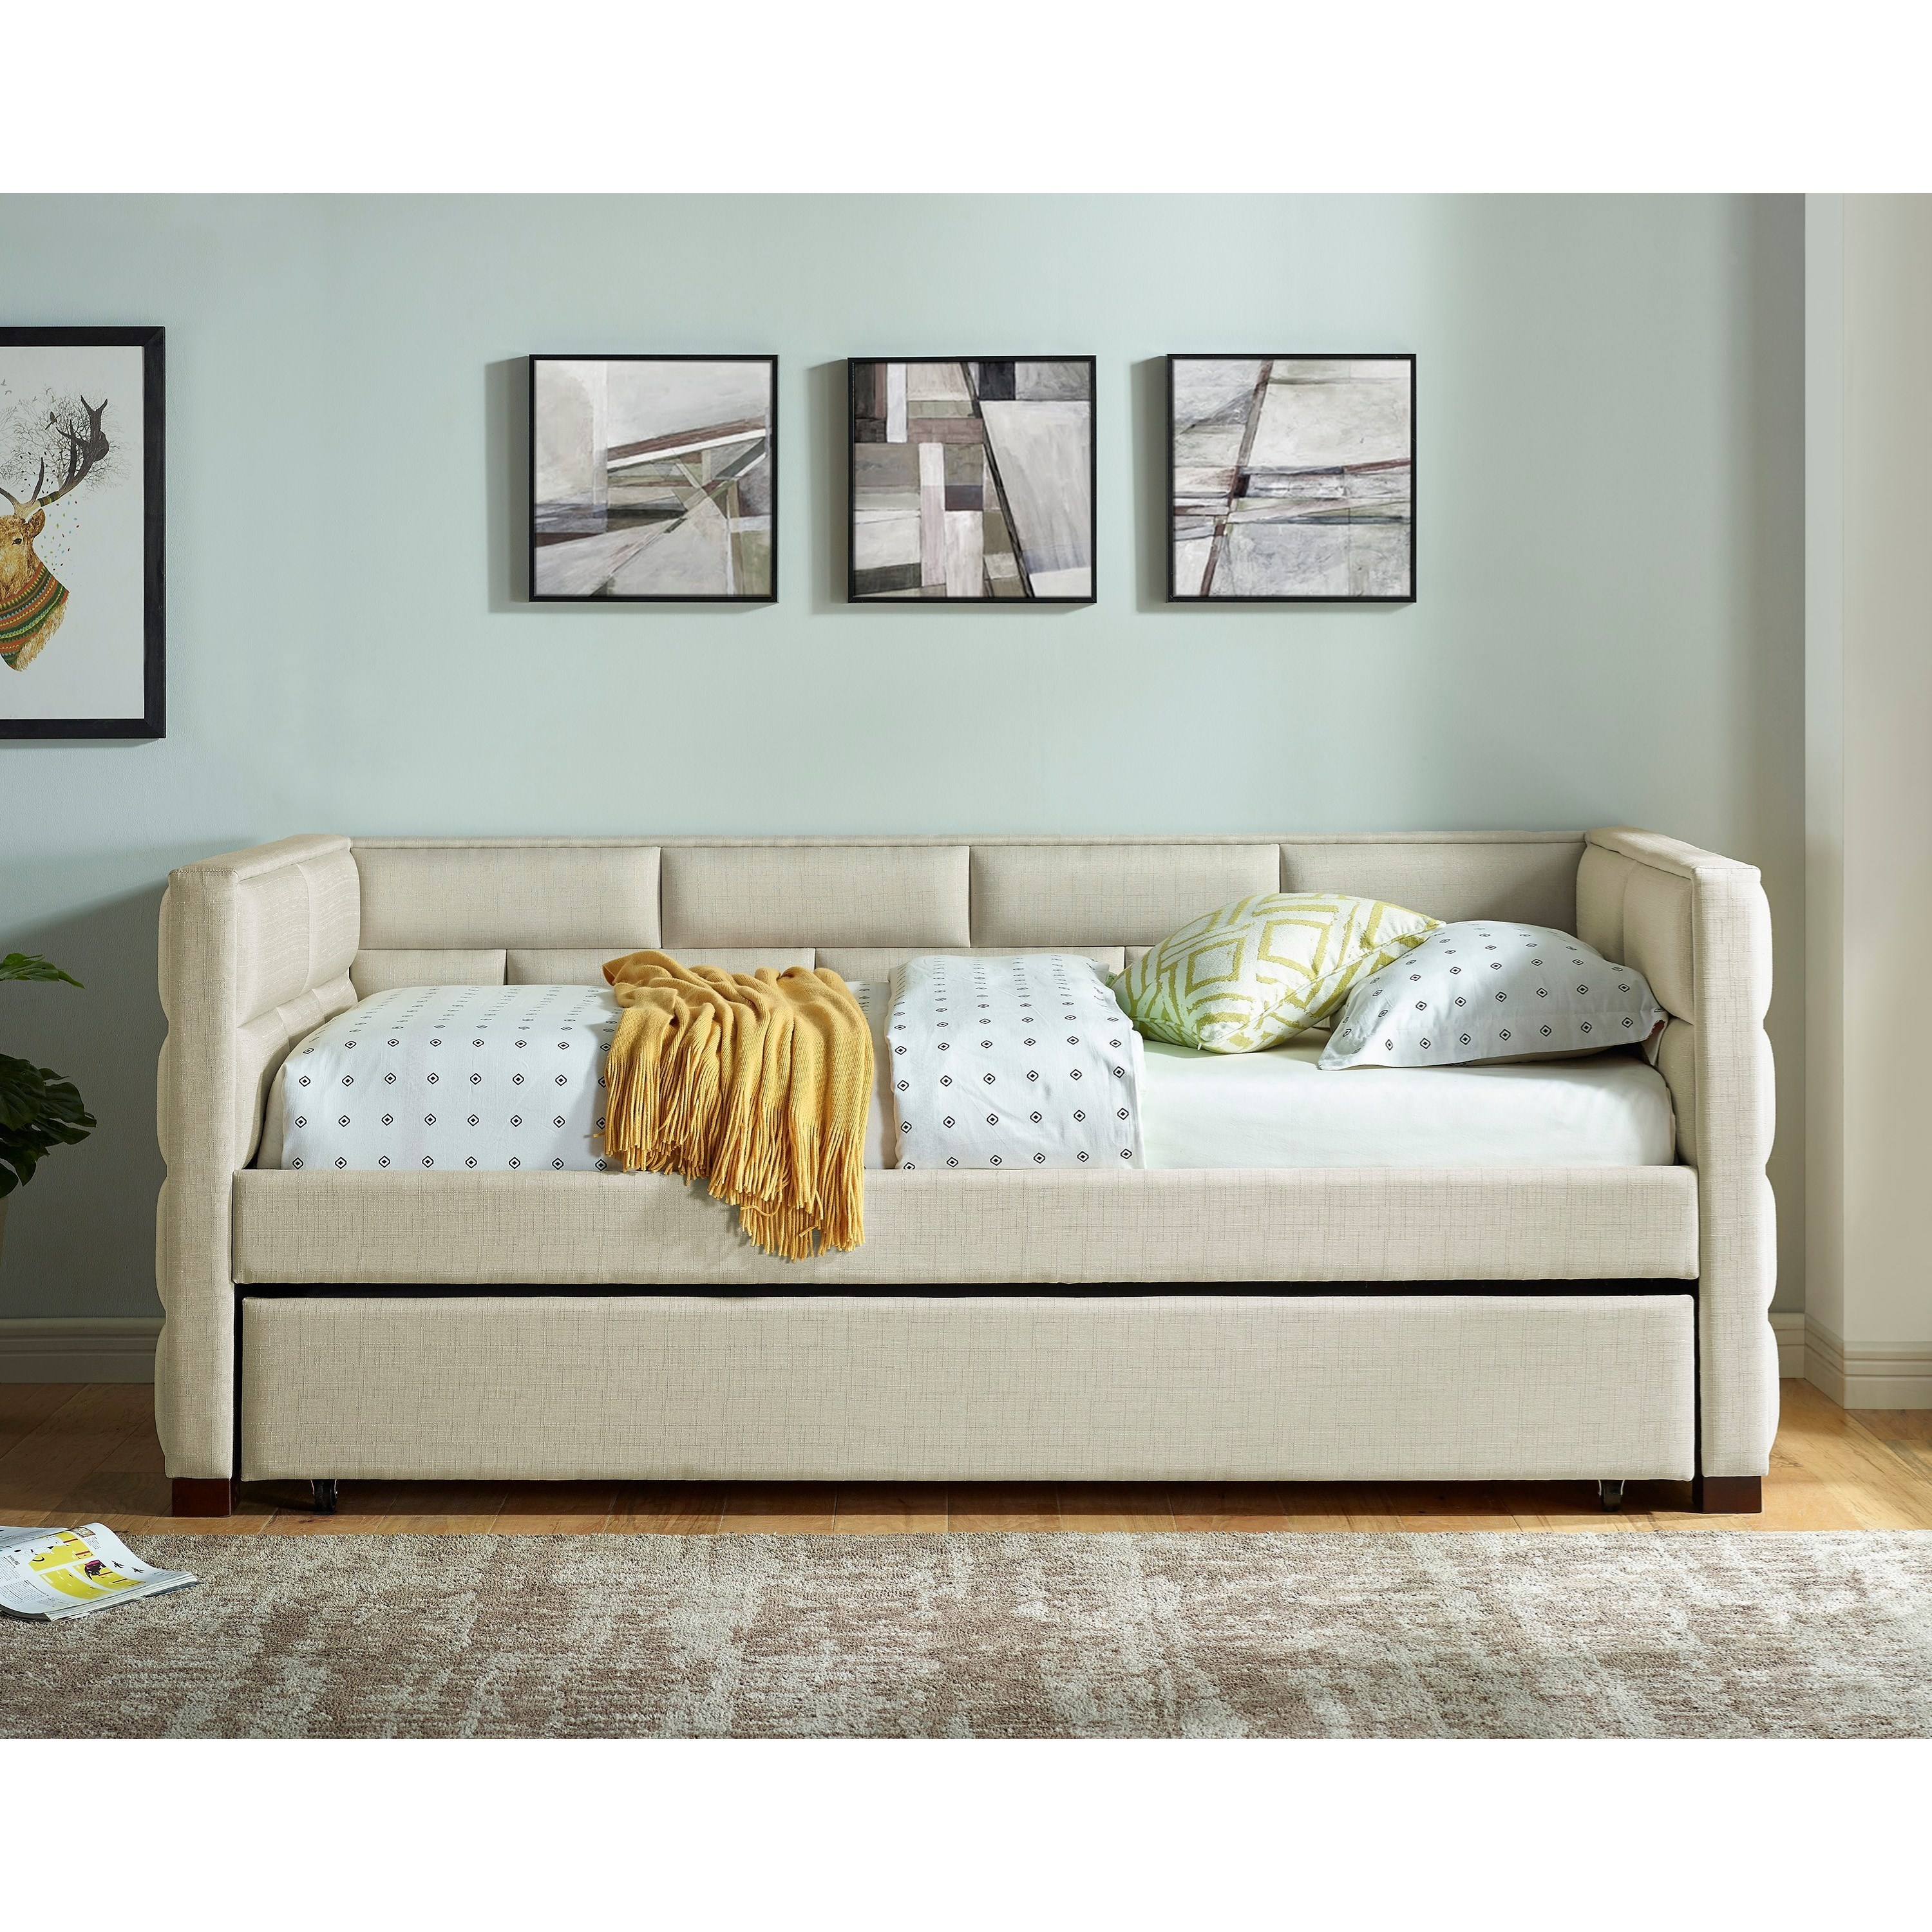 Contemporary Upholstered Daybed with Pull-Out Trundle Bed